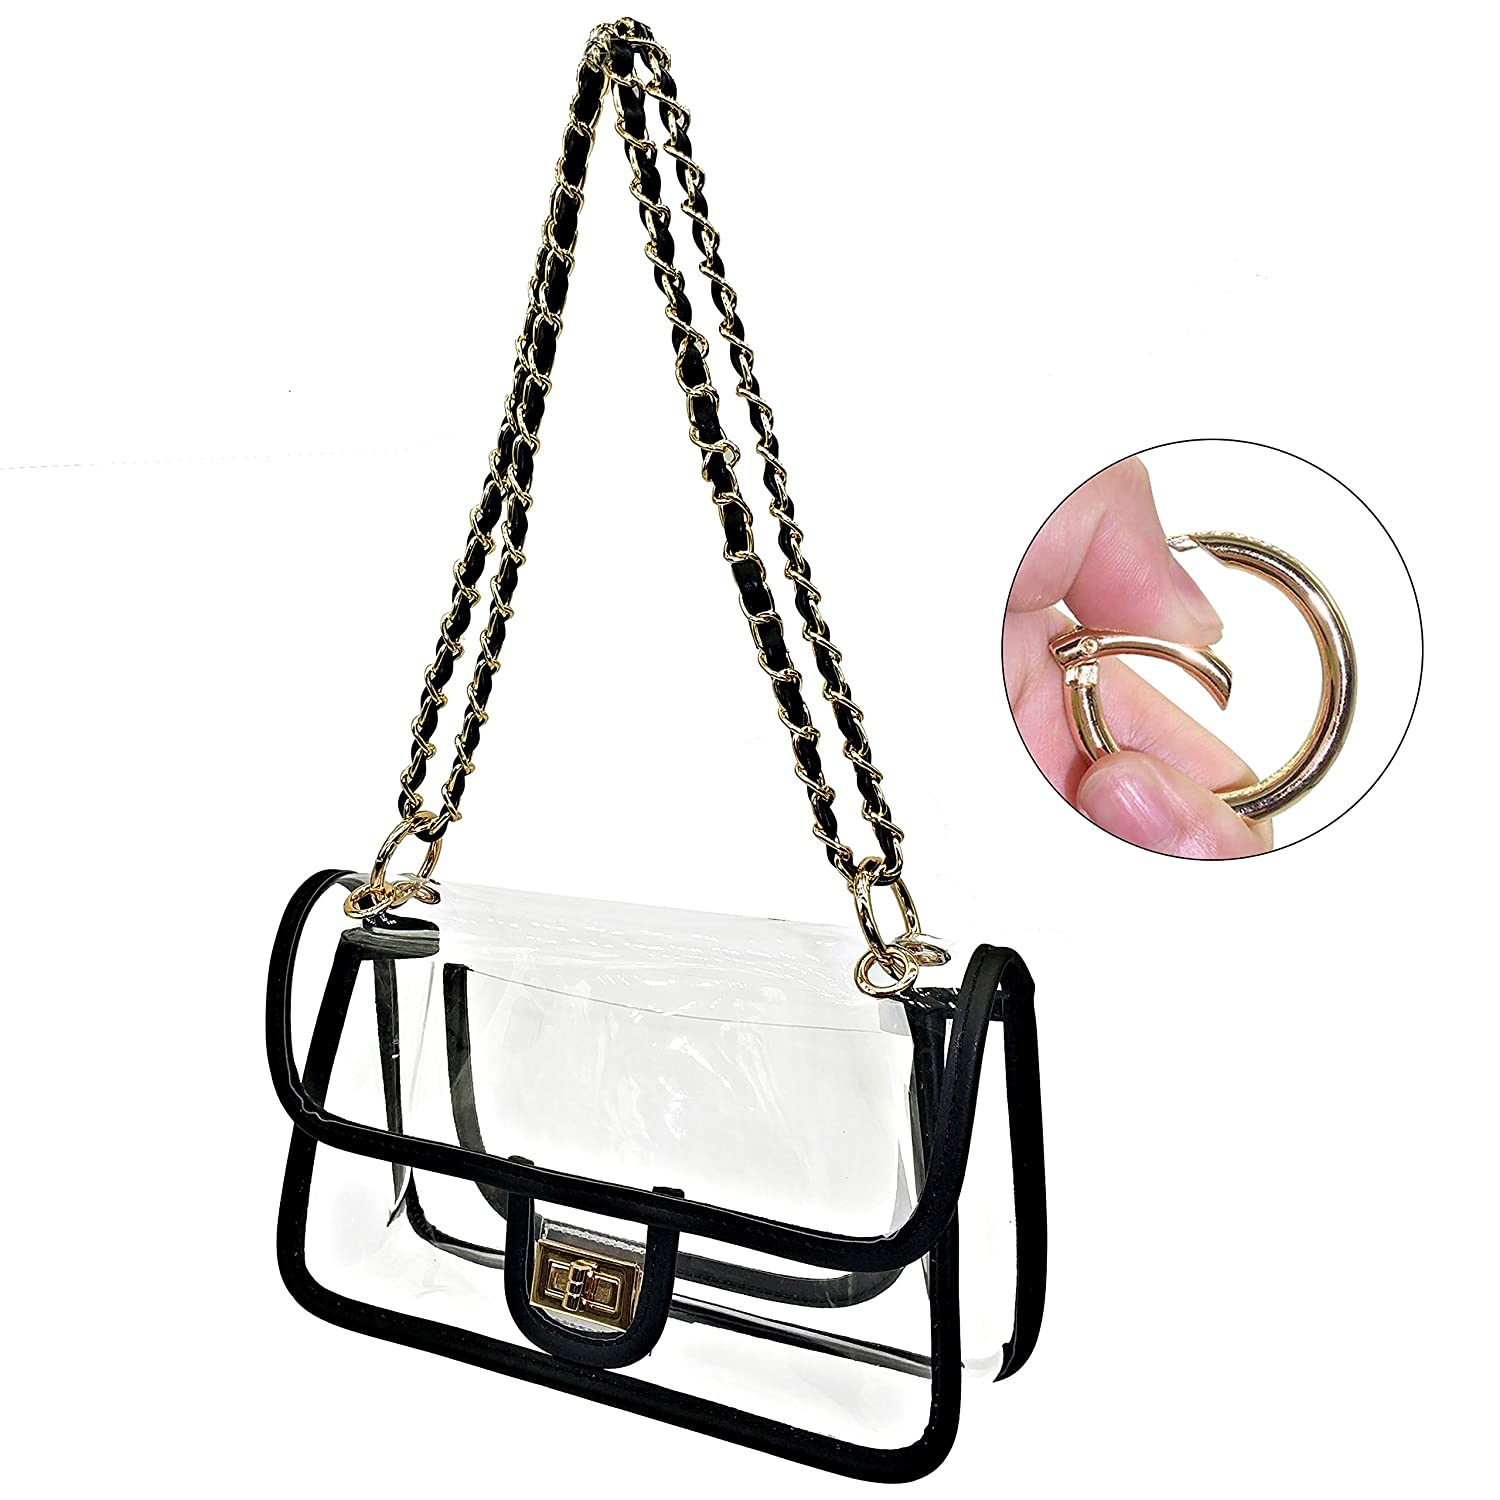 6251a3169f65 Laynos Clear Purse Turn Lock NFL Approved Chain Crossbody Shoulder Bags  Handbags